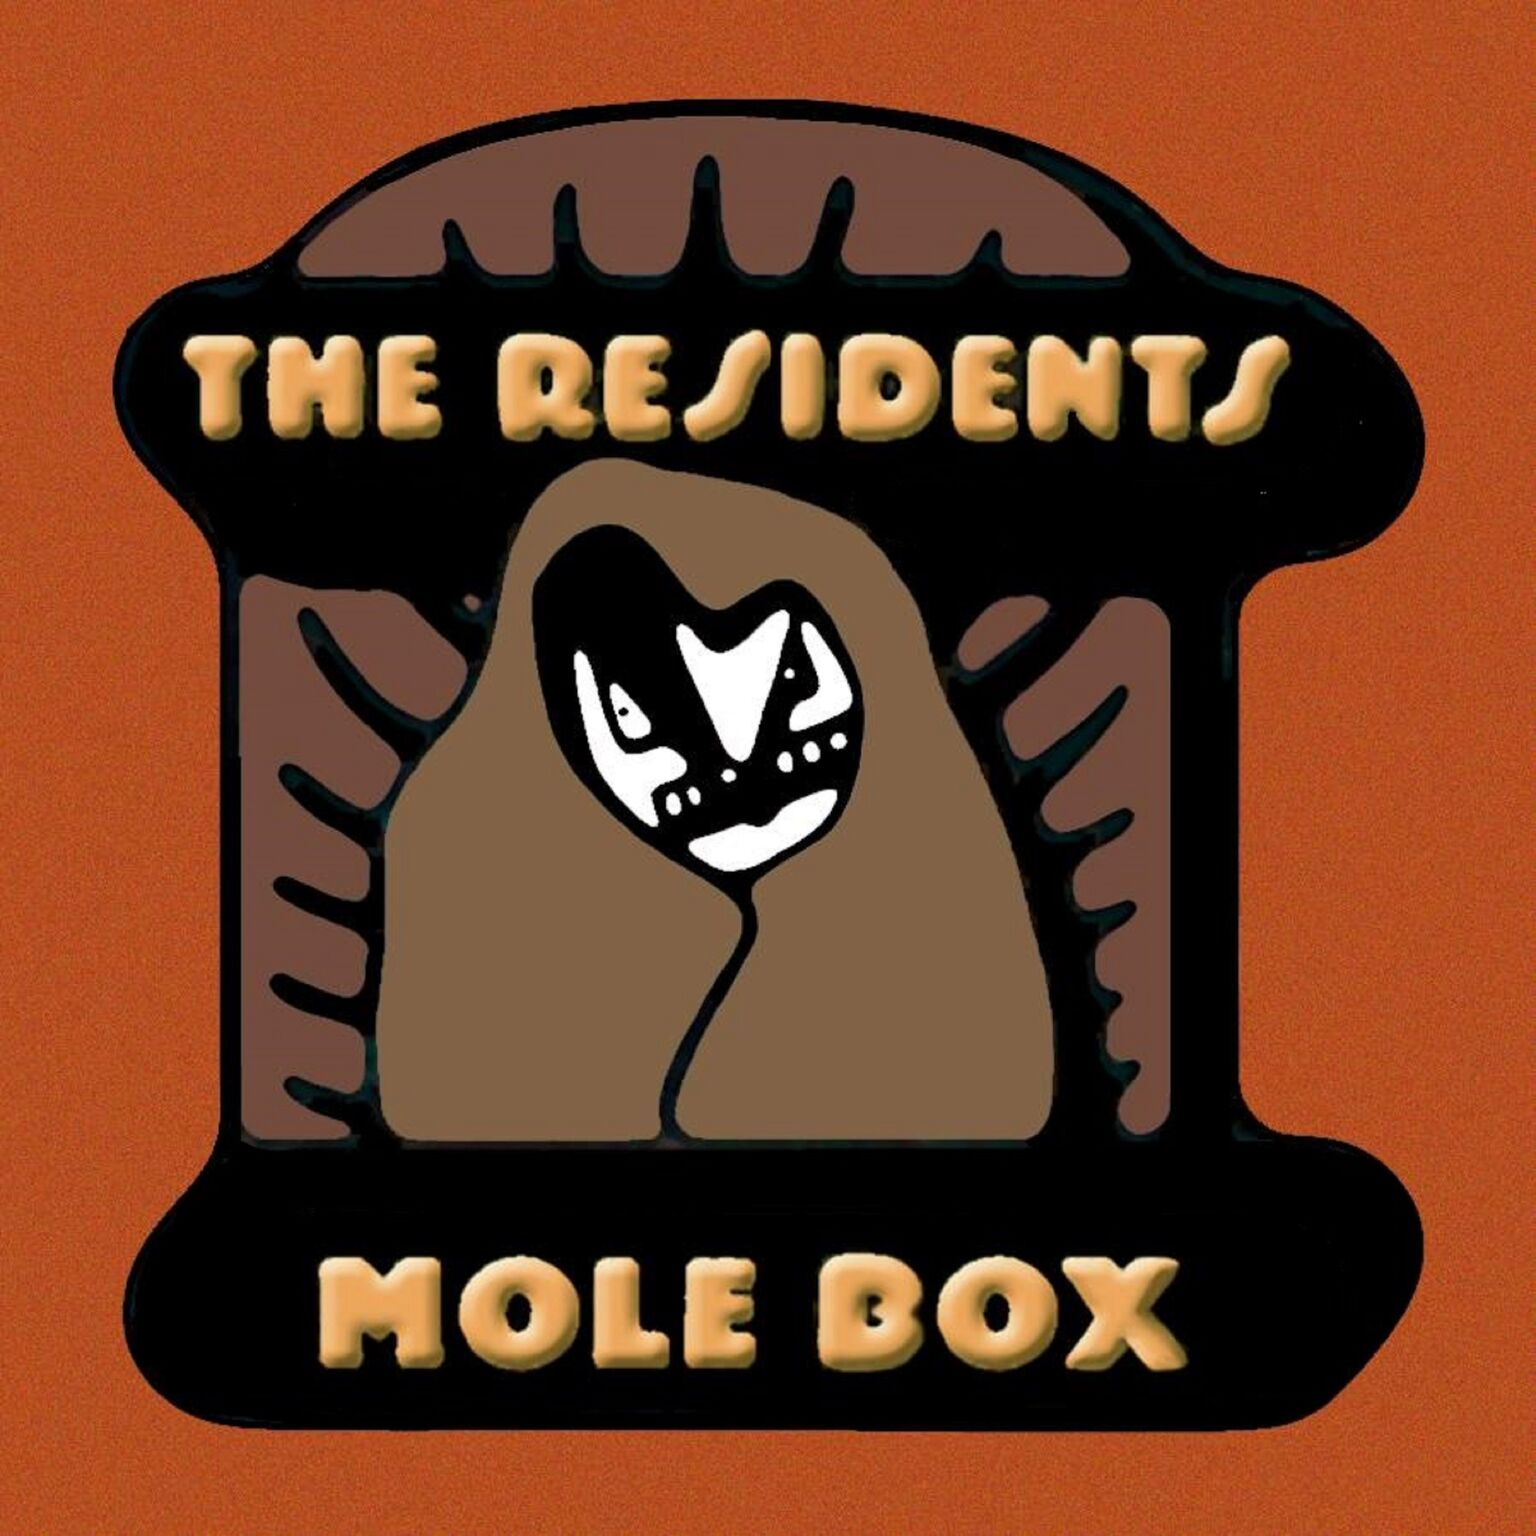 The Residents - The Complete Mole Trilogy pREServed - MVD ...